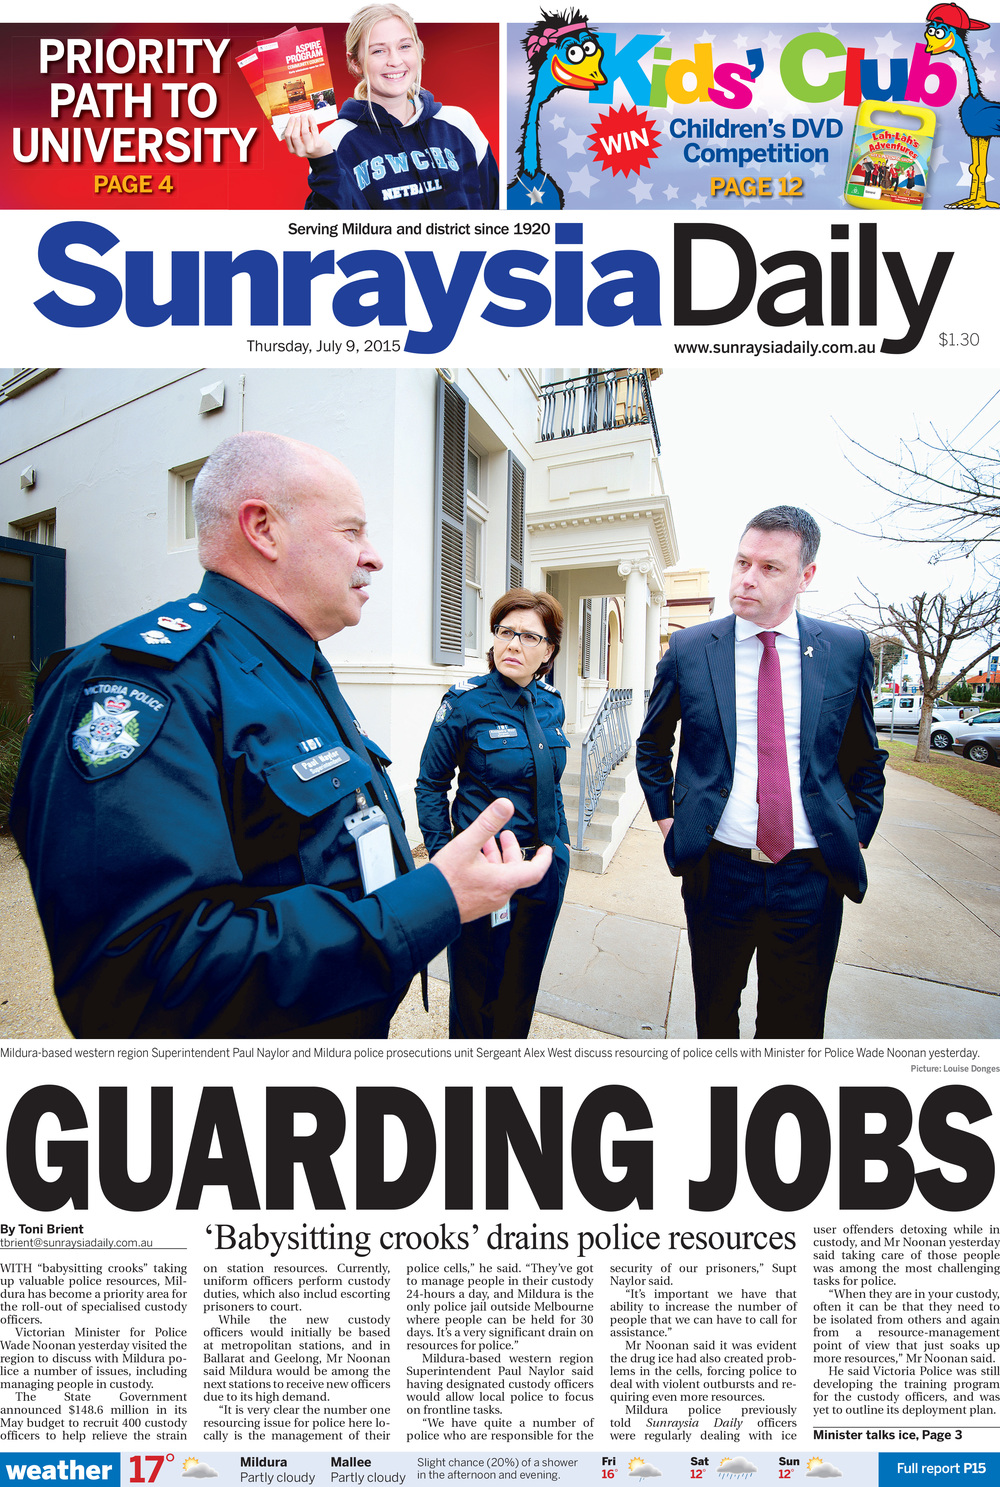 Guarding Jobs , Sunraysia Daily, July 9, 2015. Click below to read stories.